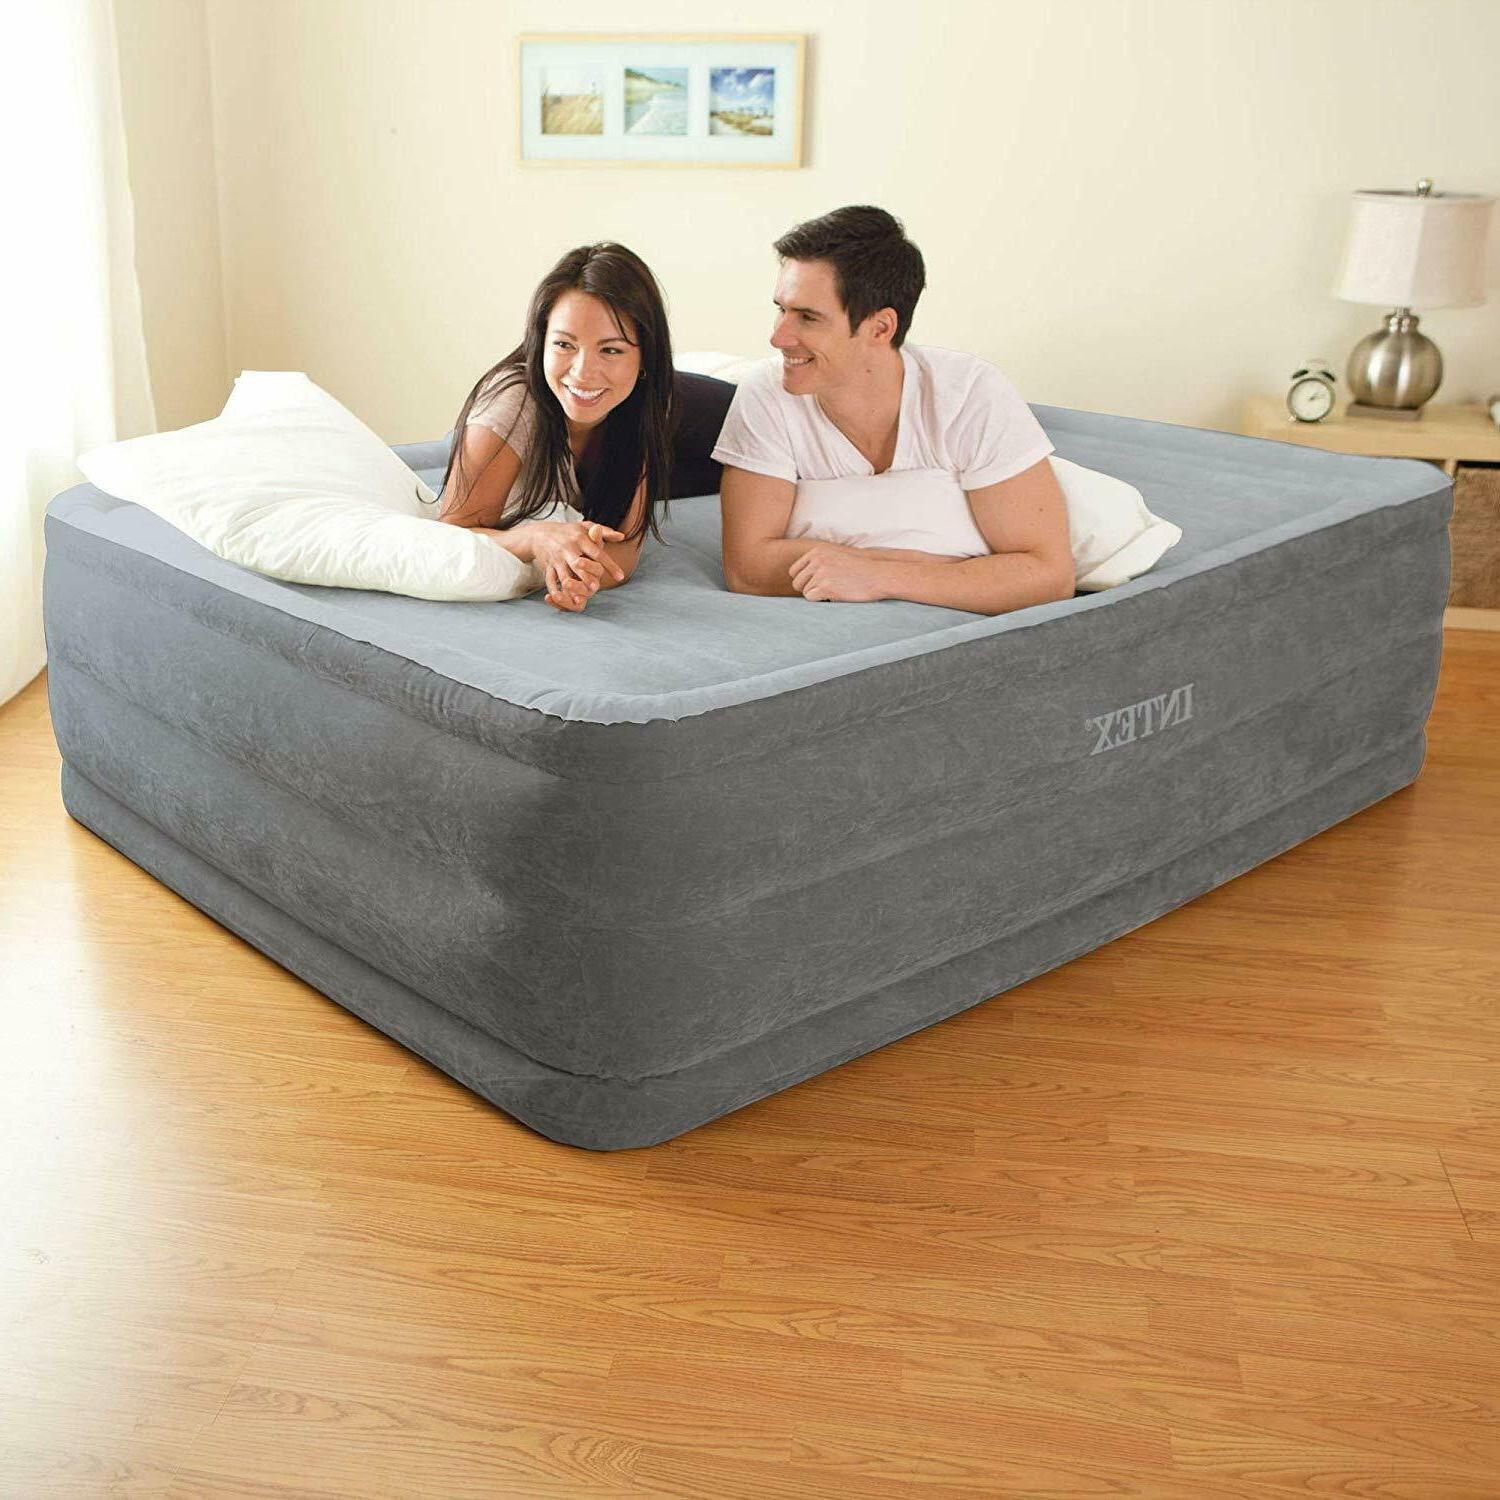 Intex Comfort Inflatable Queen Size Air Bed Mattress with Bu